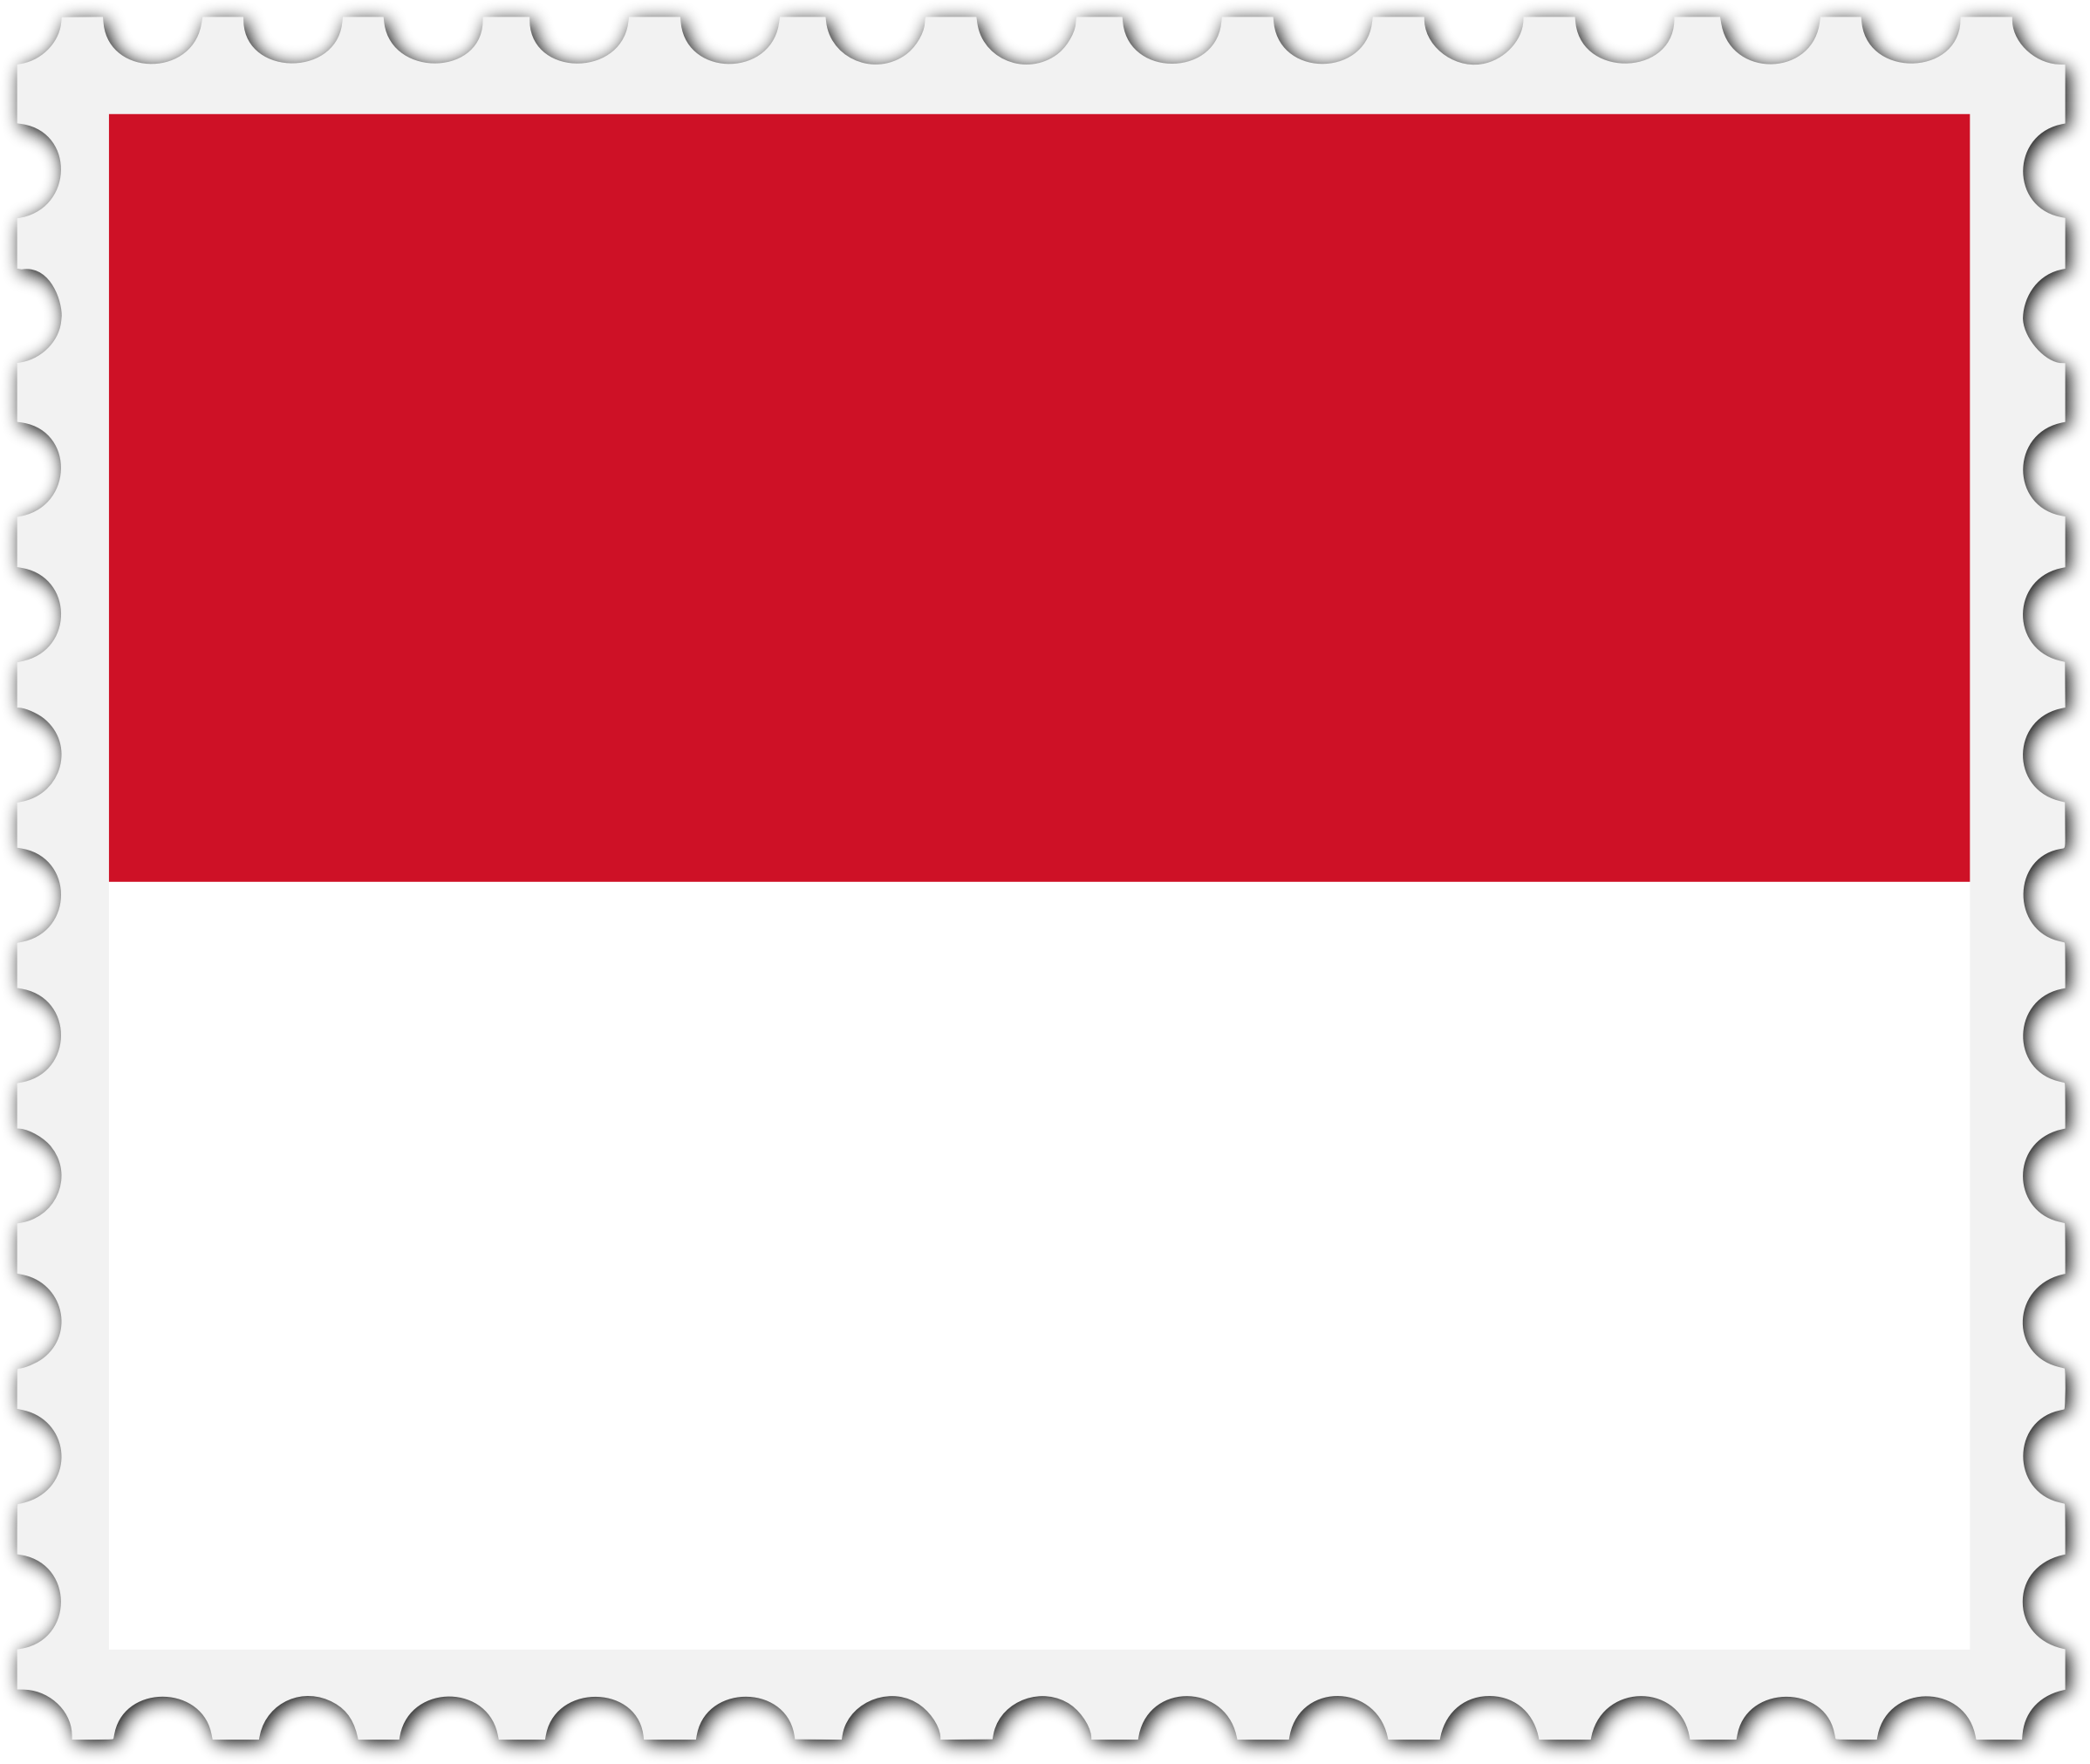 Monaco flag stamp by Firkin